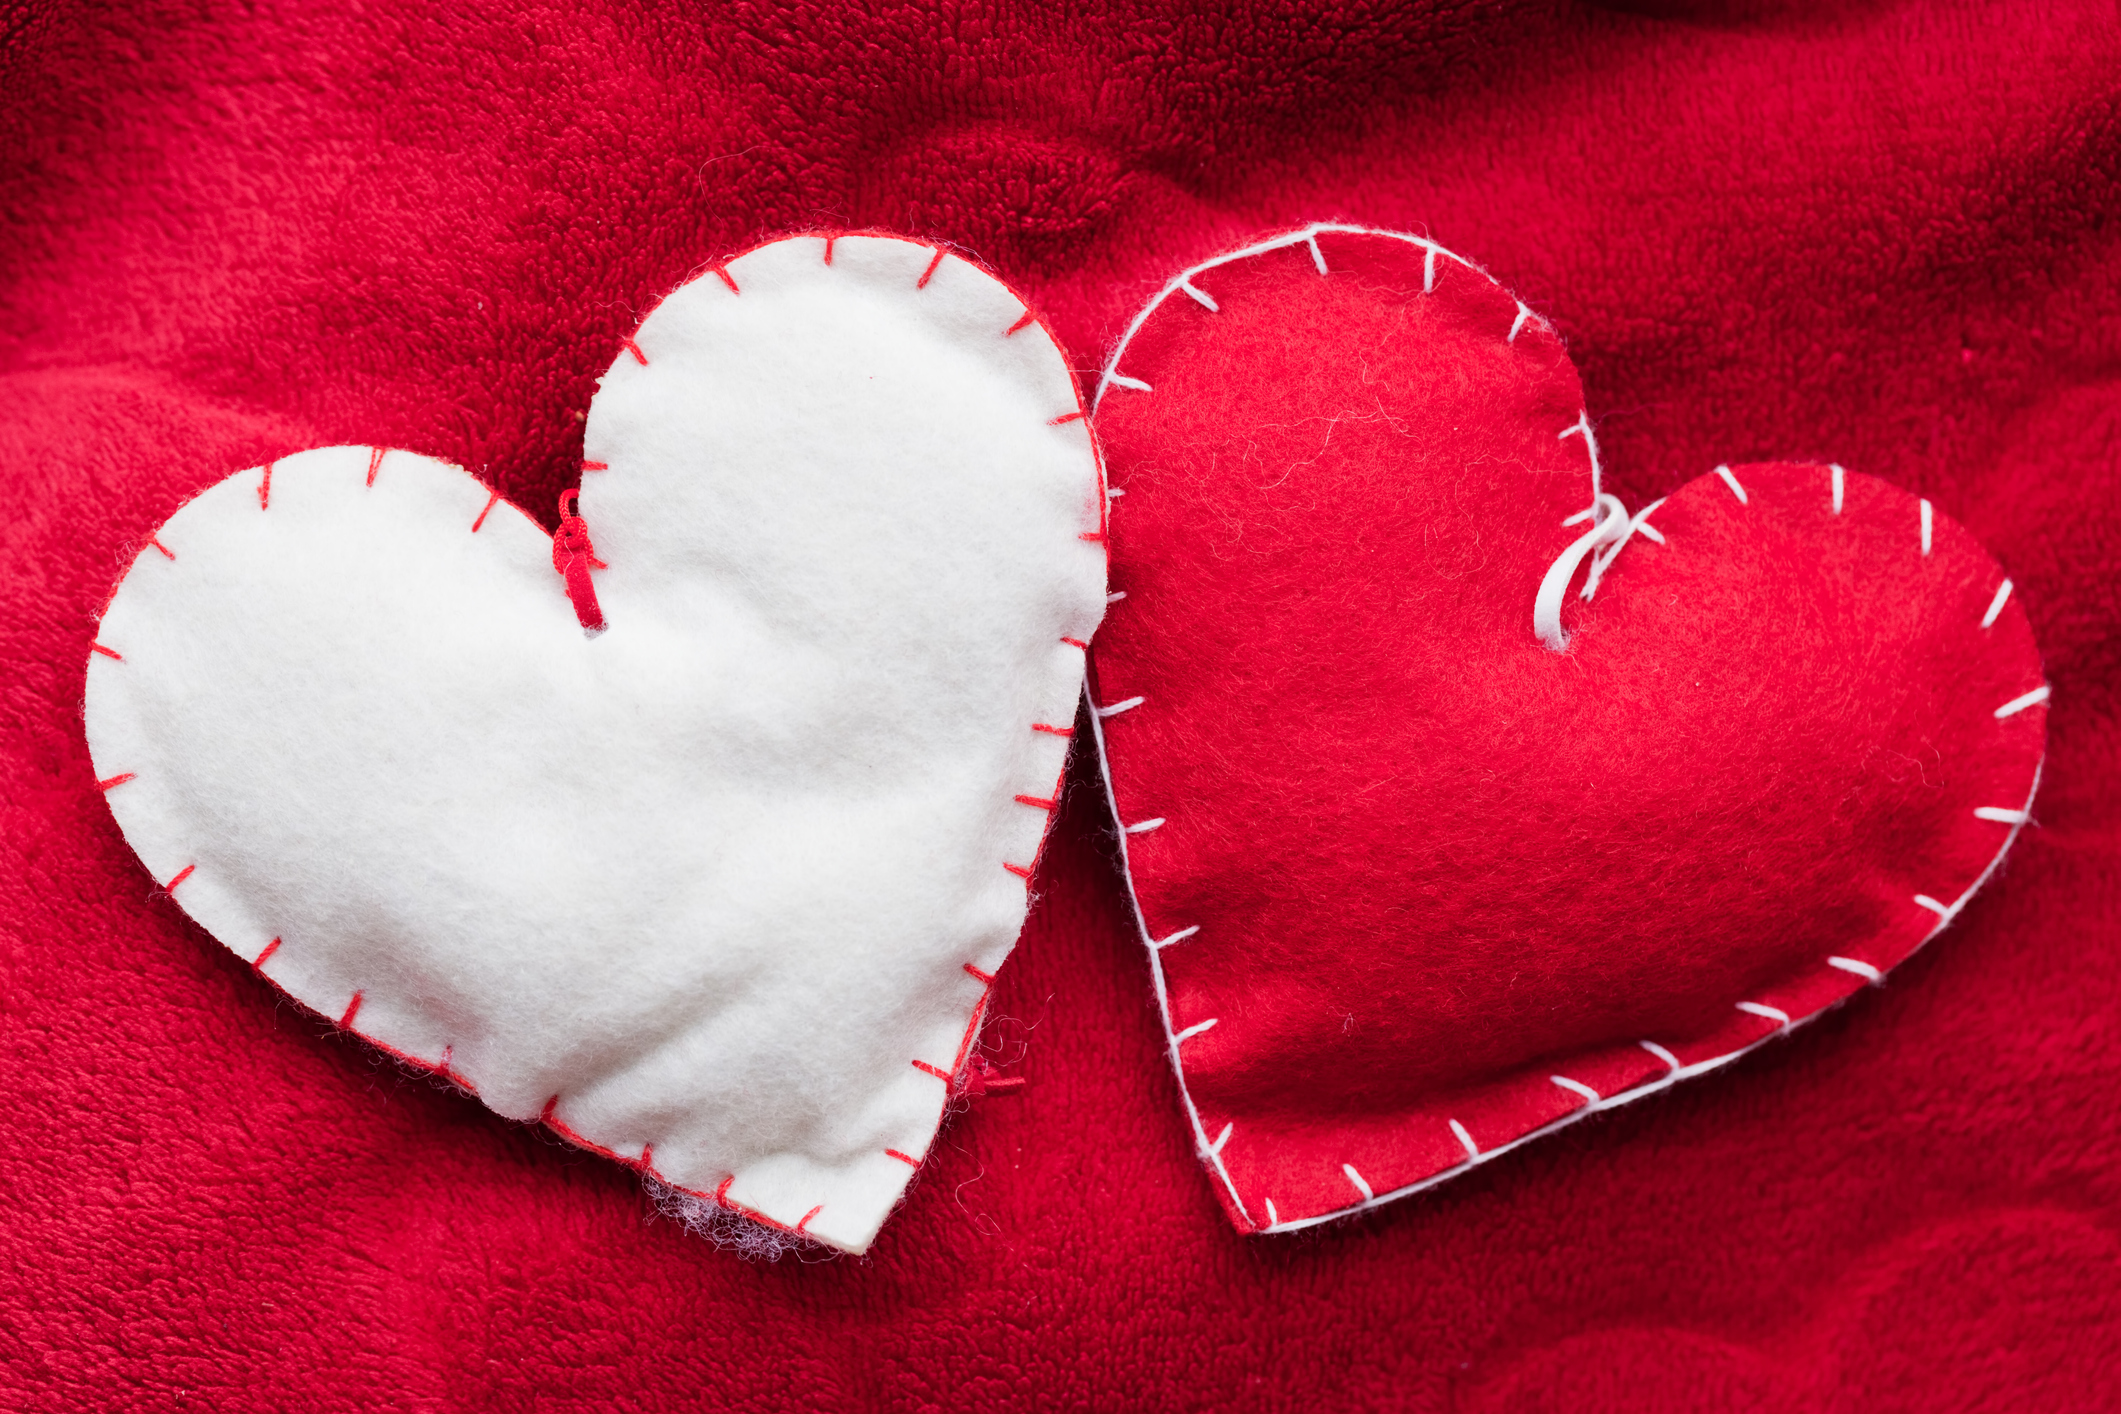 handmade-plush-red-hearts-couple-on-soft-blanket-romantic-lovejpg